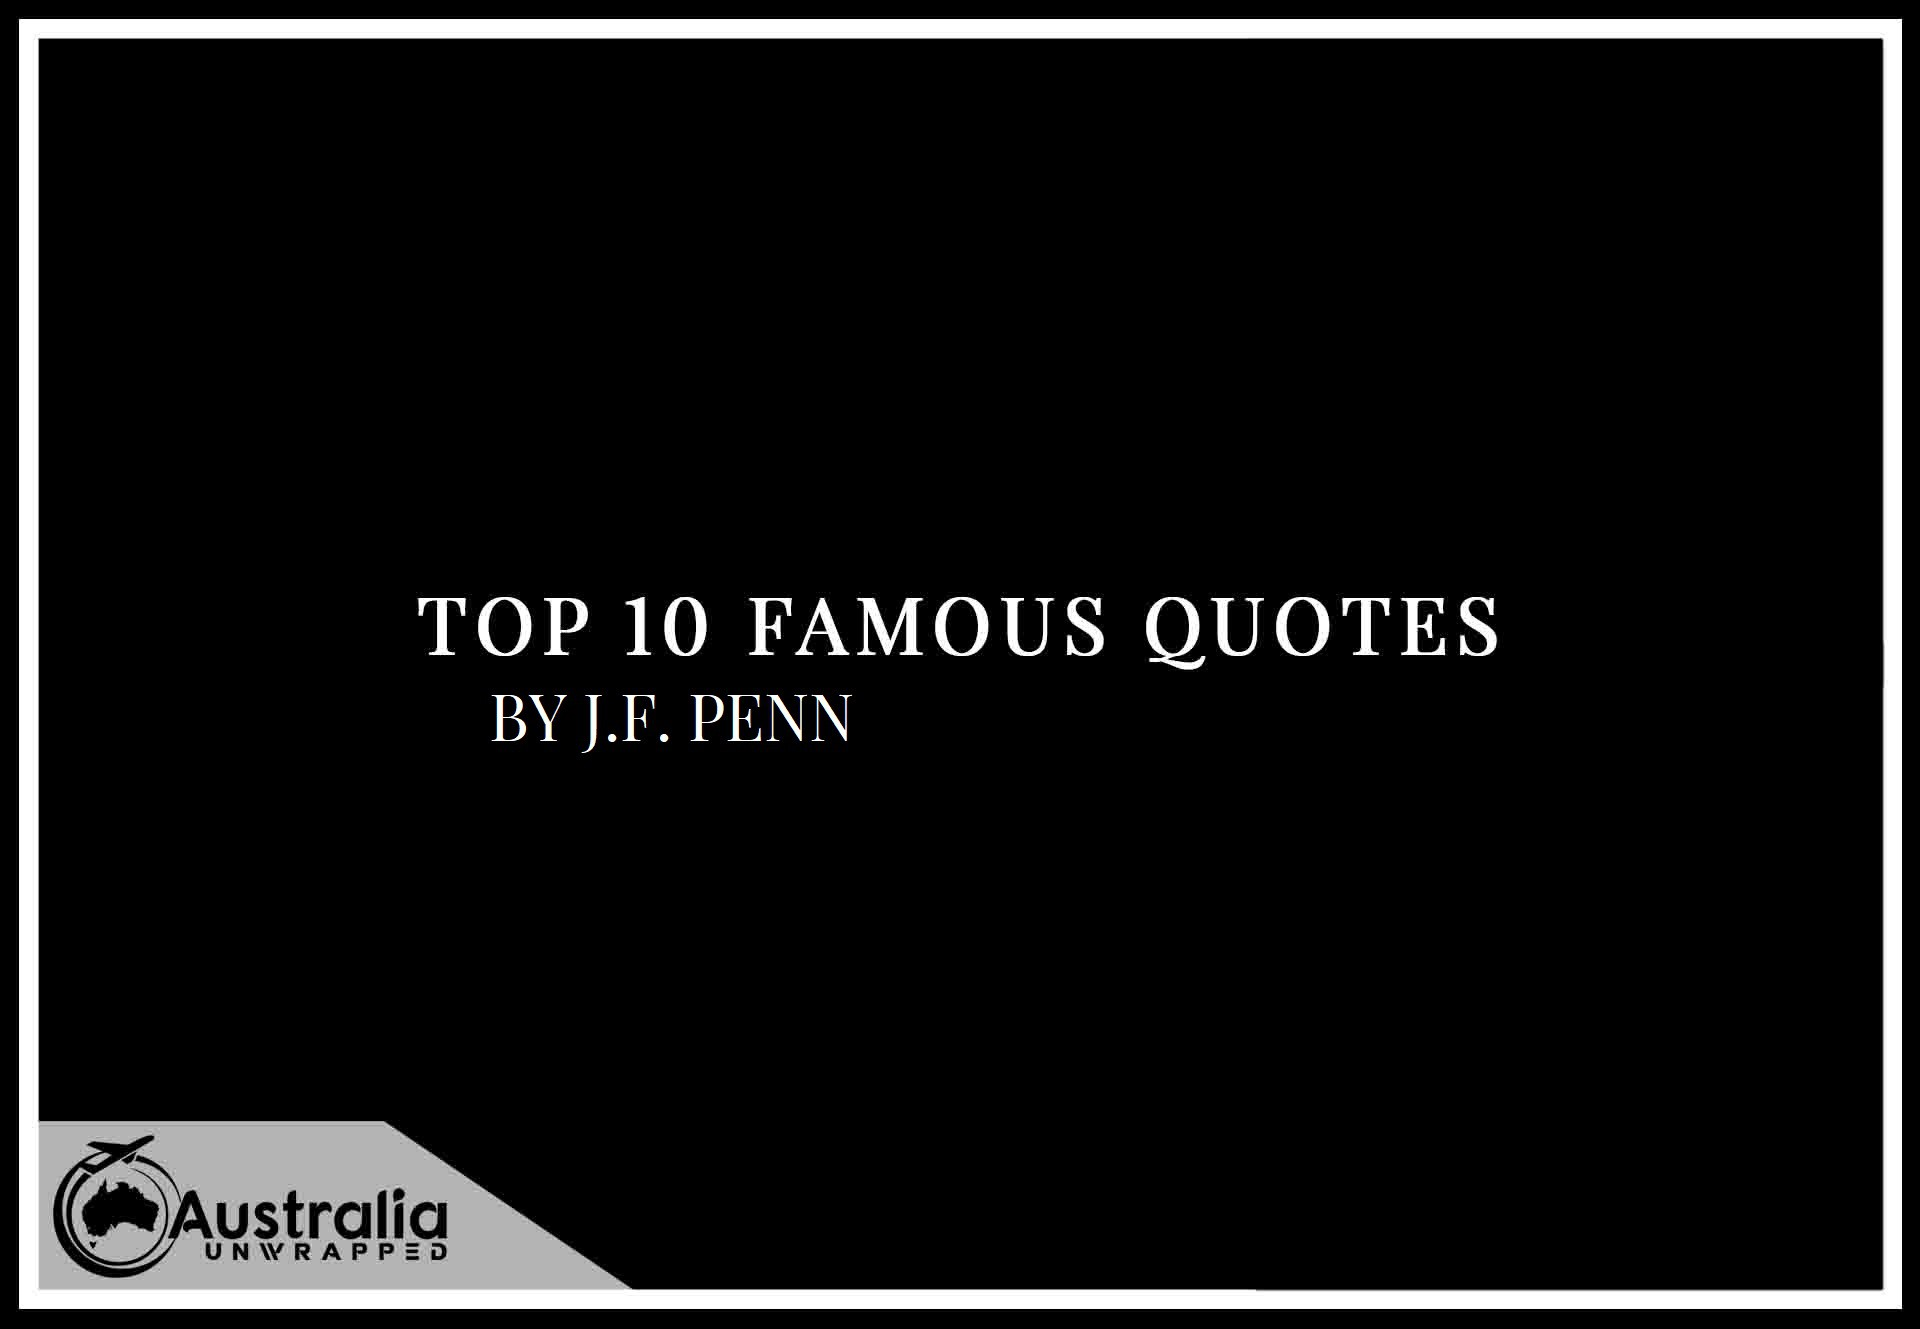 Top 10 Famous Quotes by Author Joanna Penn